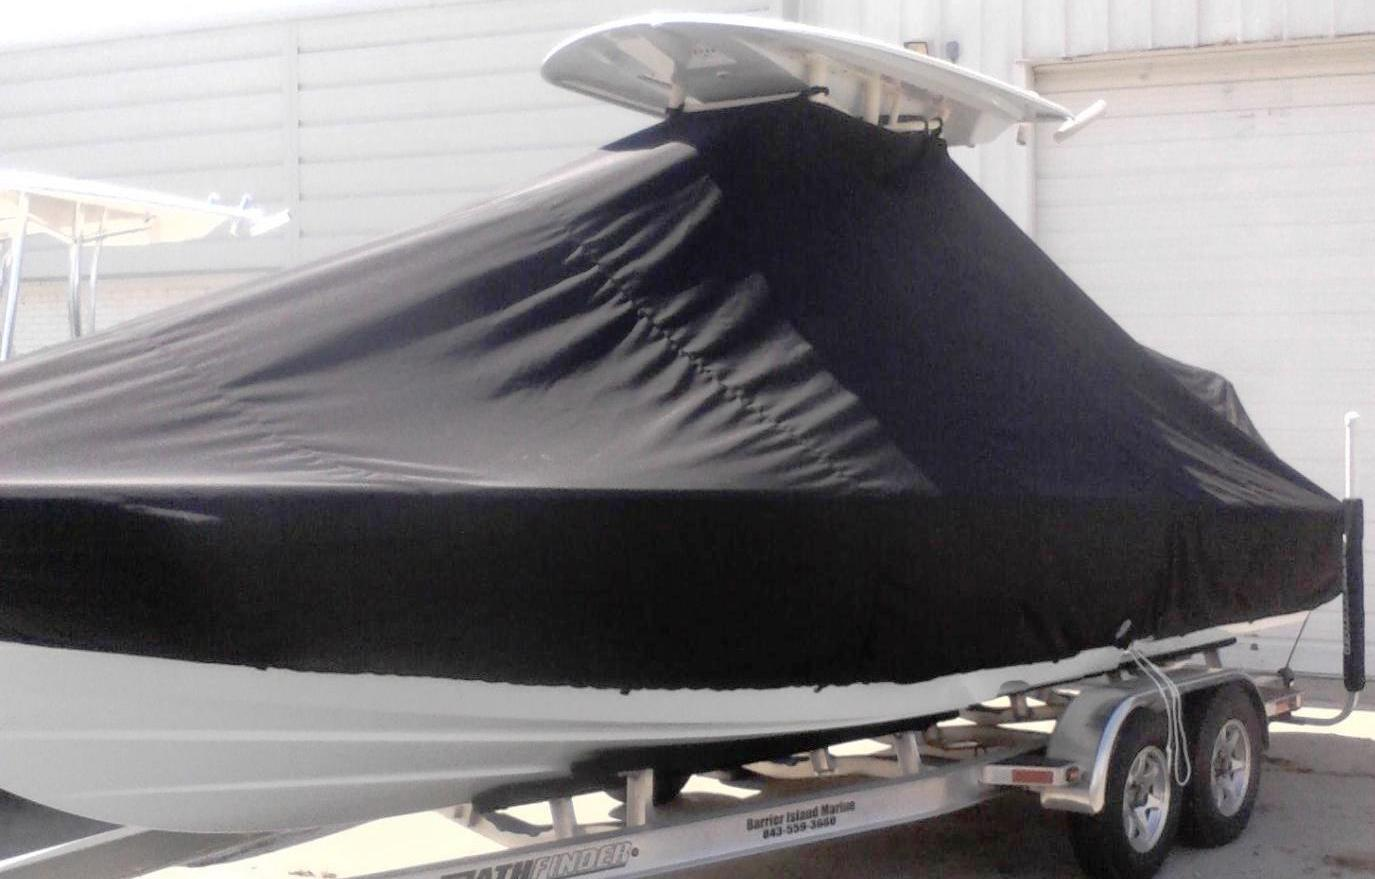 Pathfinder 2600 HPS, 20xx, TTopCovers™ T-Top boat cover, port front